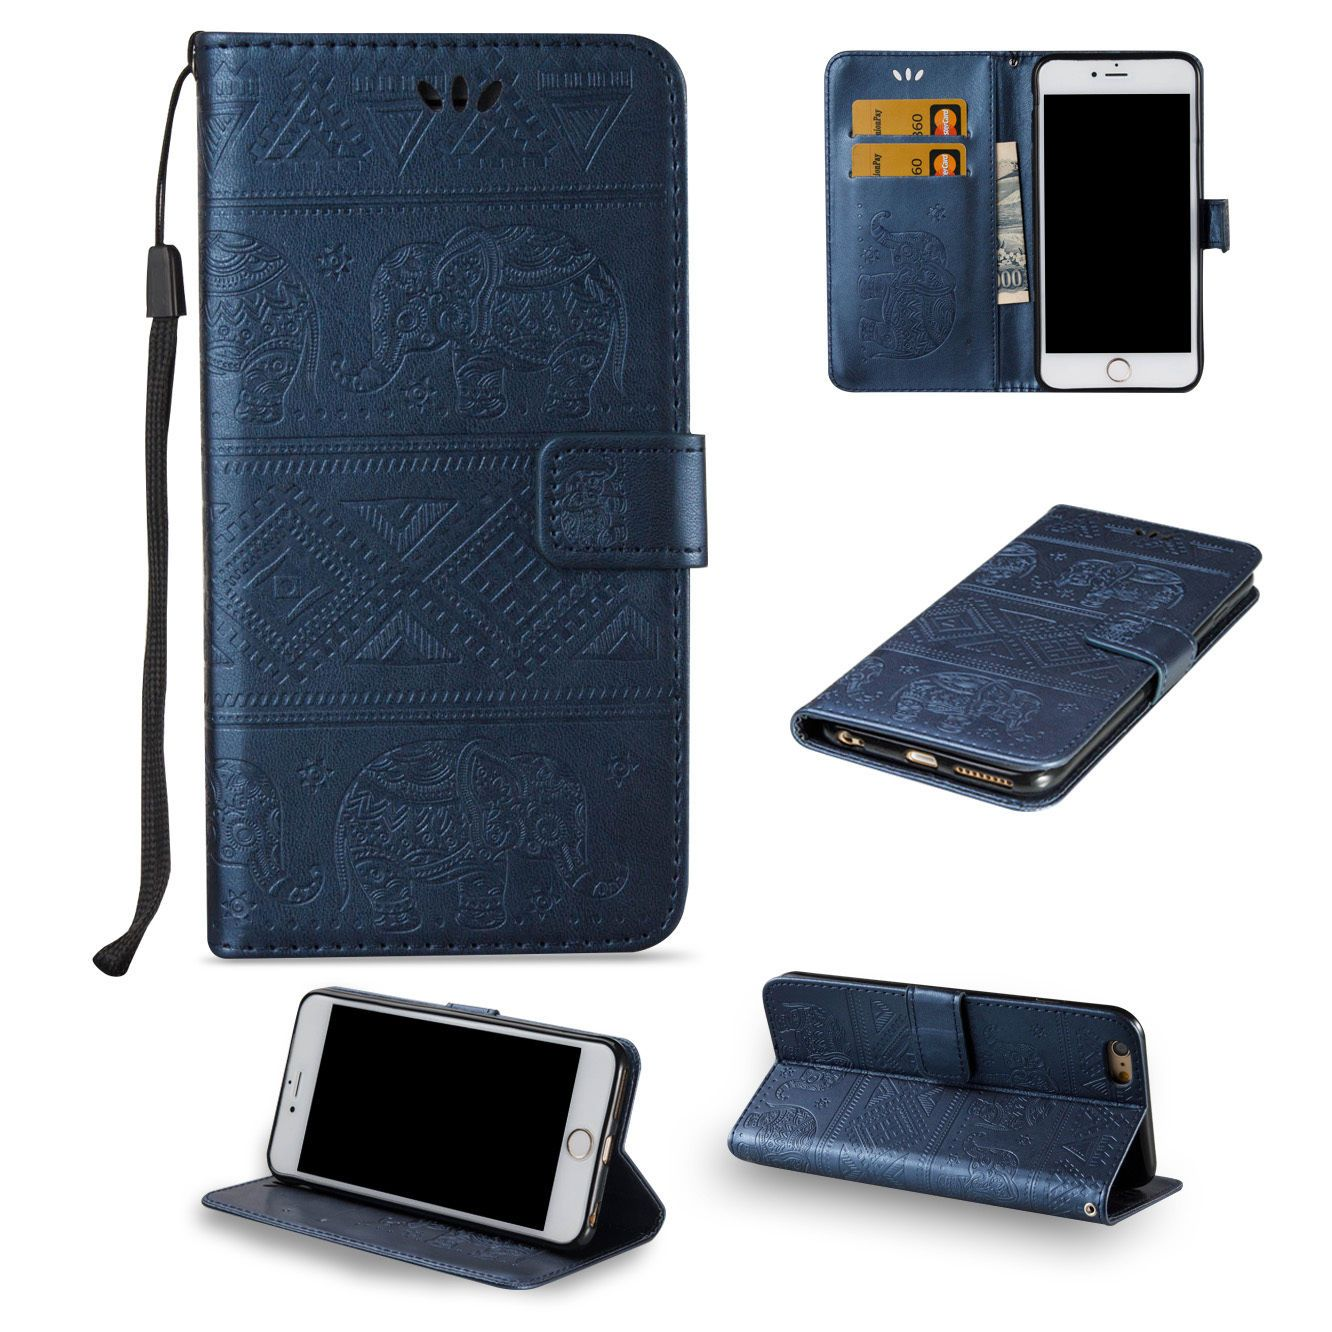 Solid Fold Stand Leather Wallet Phone Cases For Samsung Galaxy Cell Phone With Images